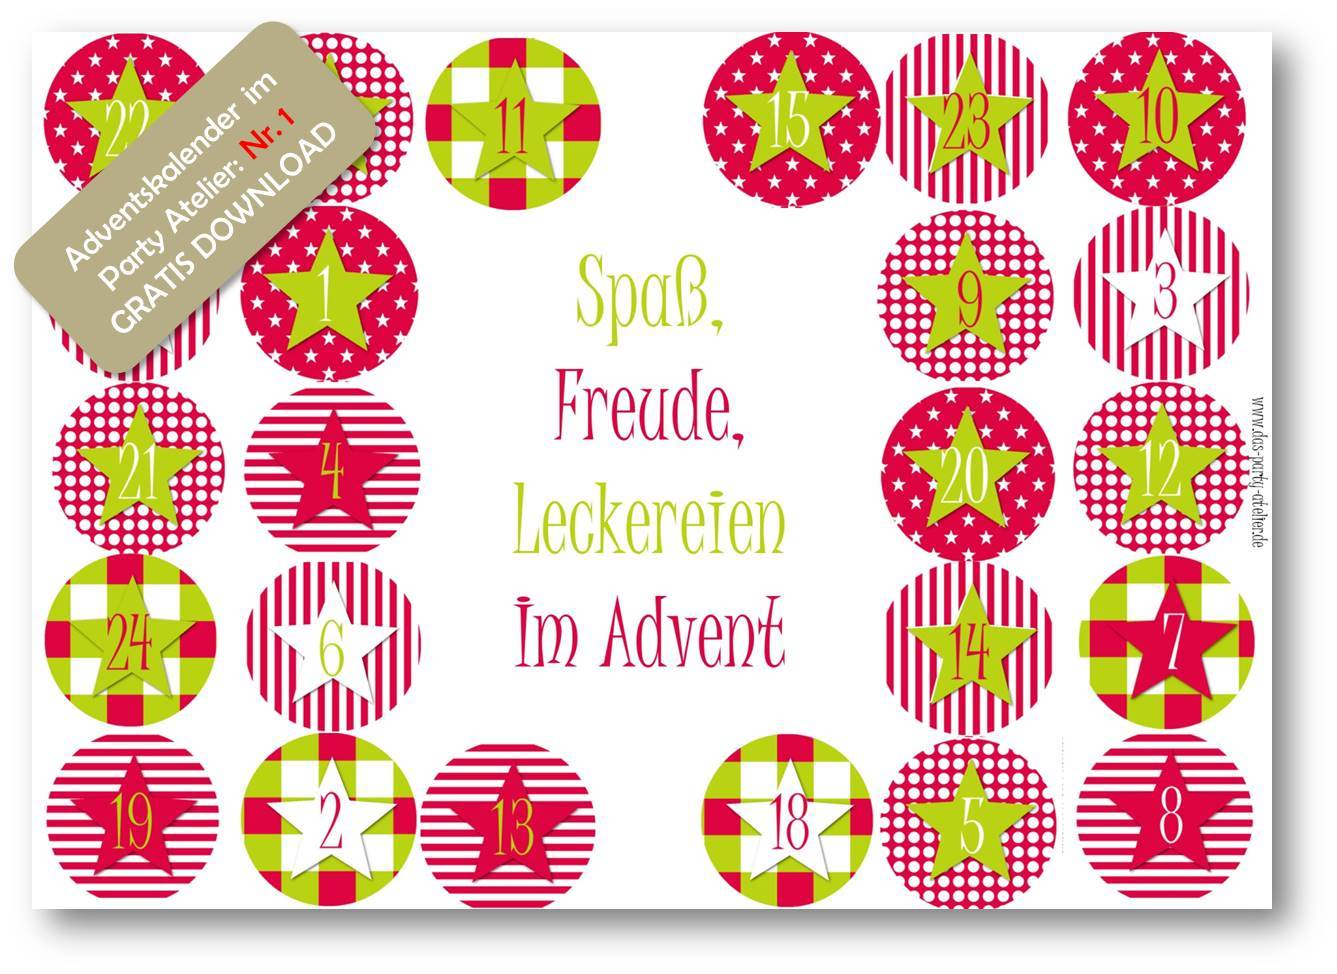 Download_Adventskalender_1